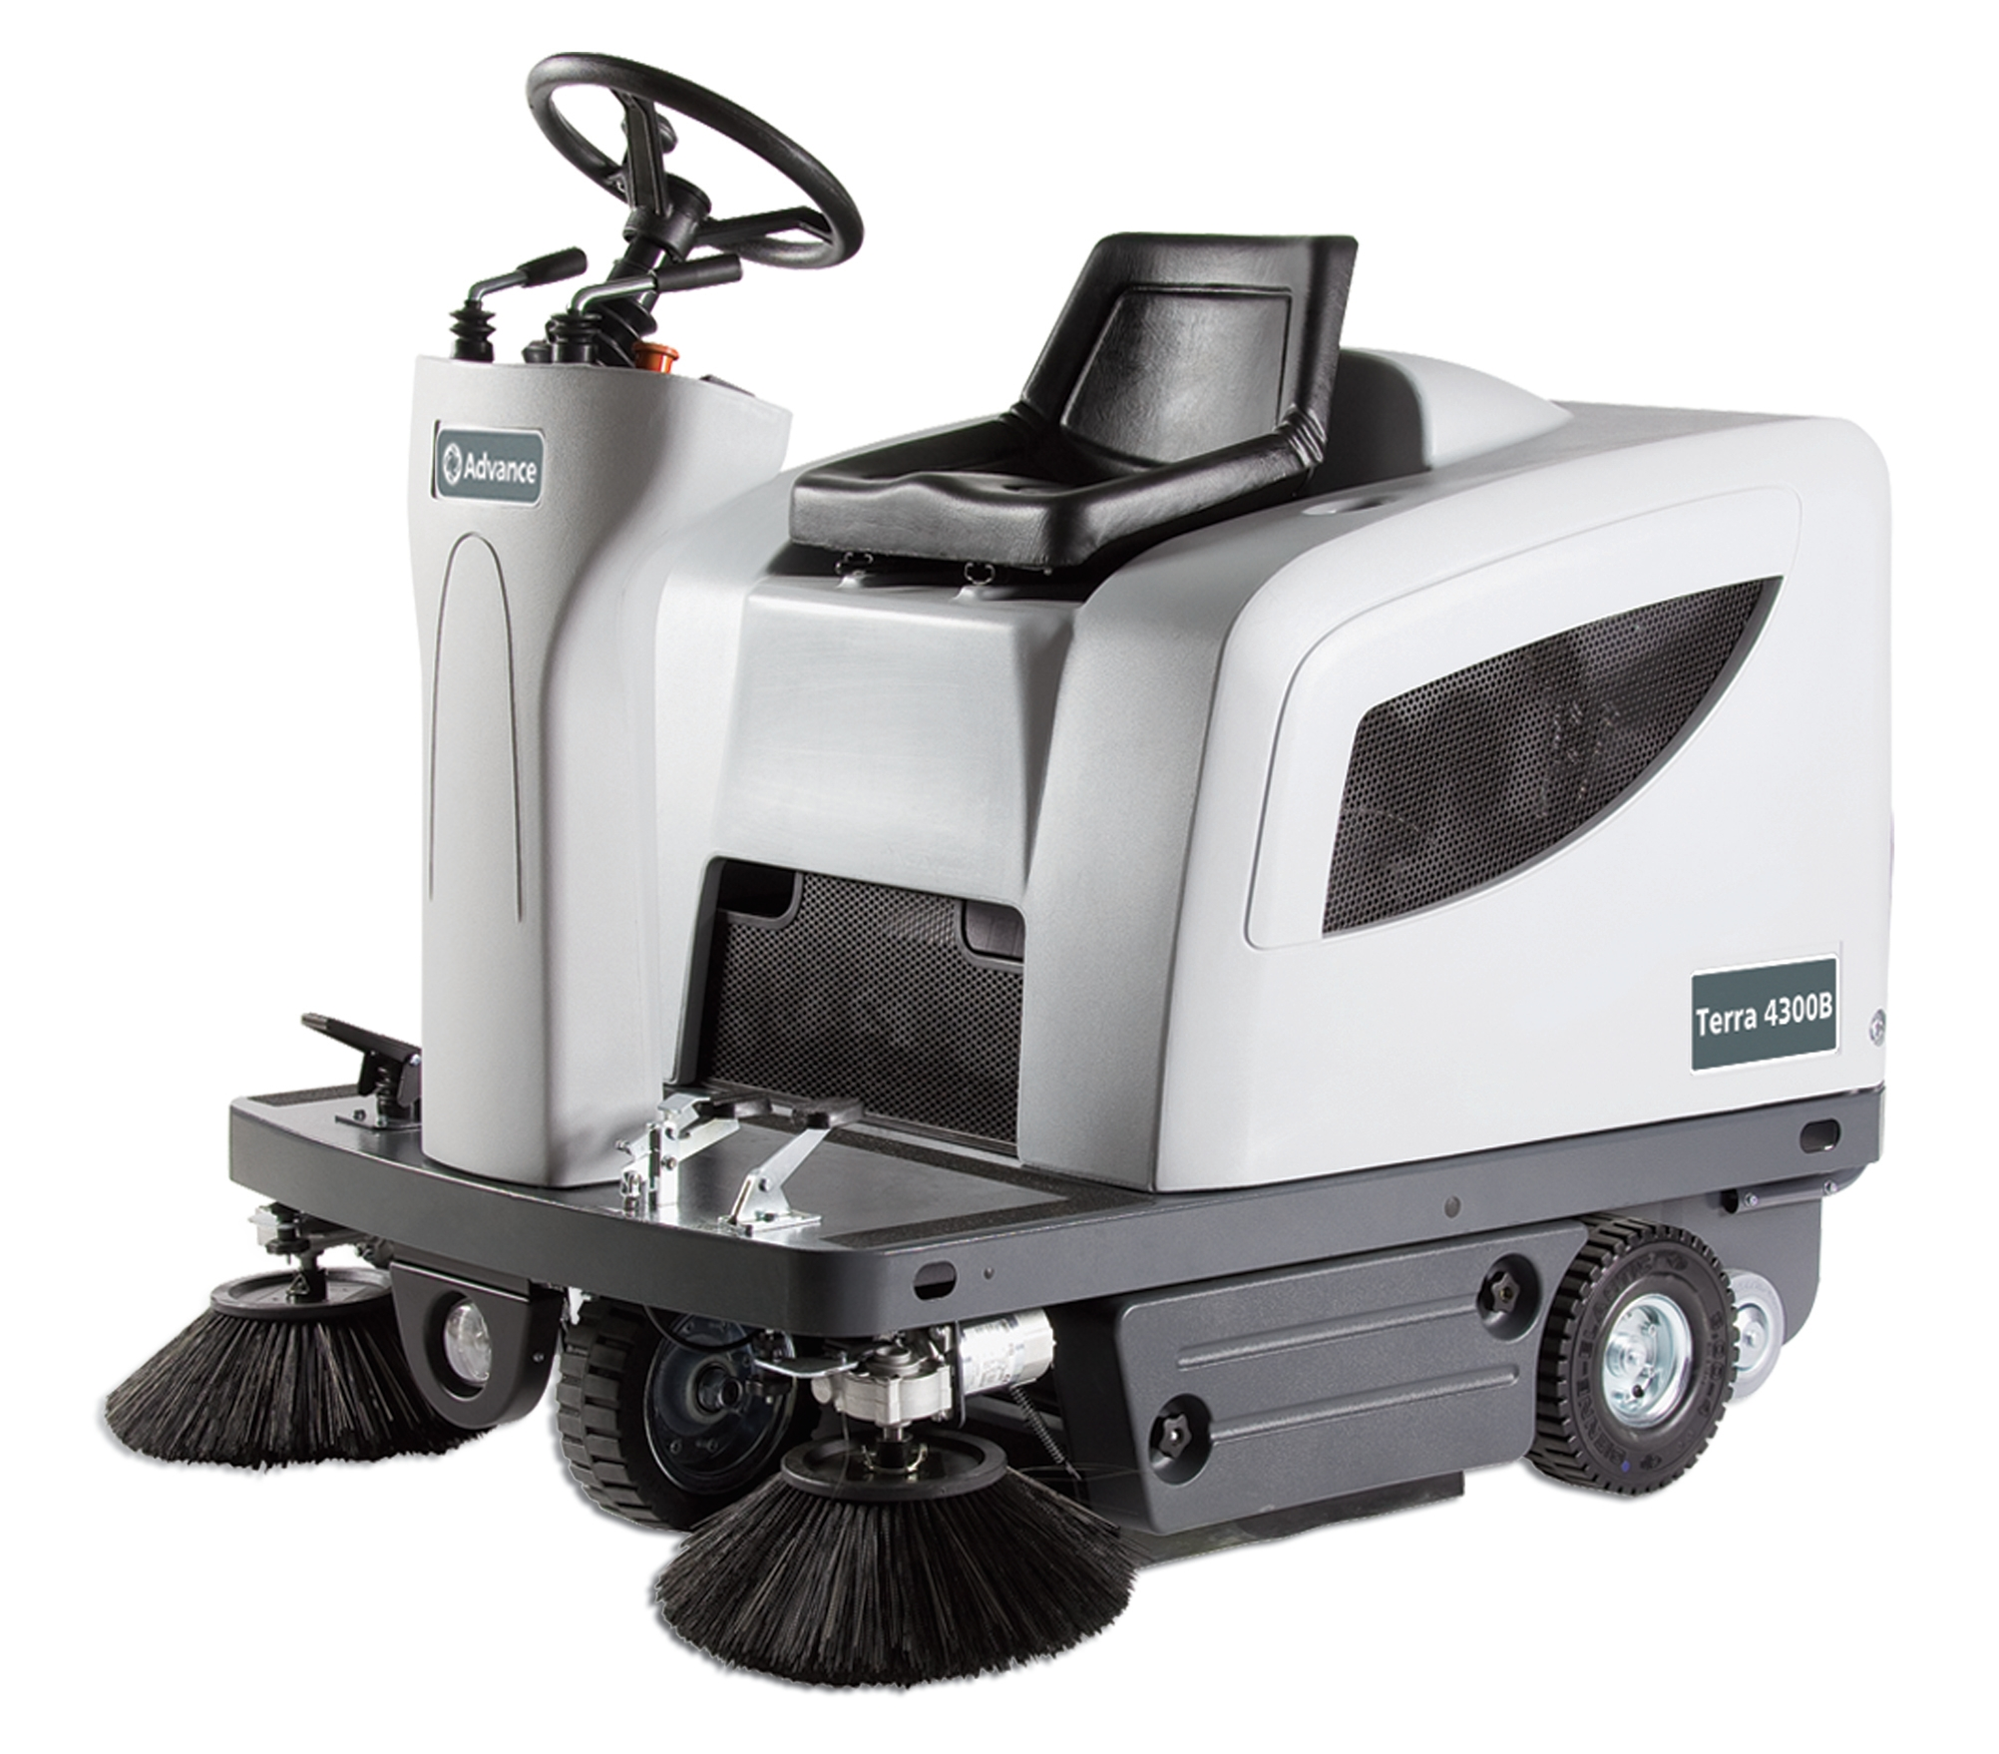 Product, Floor cleaning, Sweepers, Ride-on sweepers, Nilfisk, TERRA 4300B PACKAGE